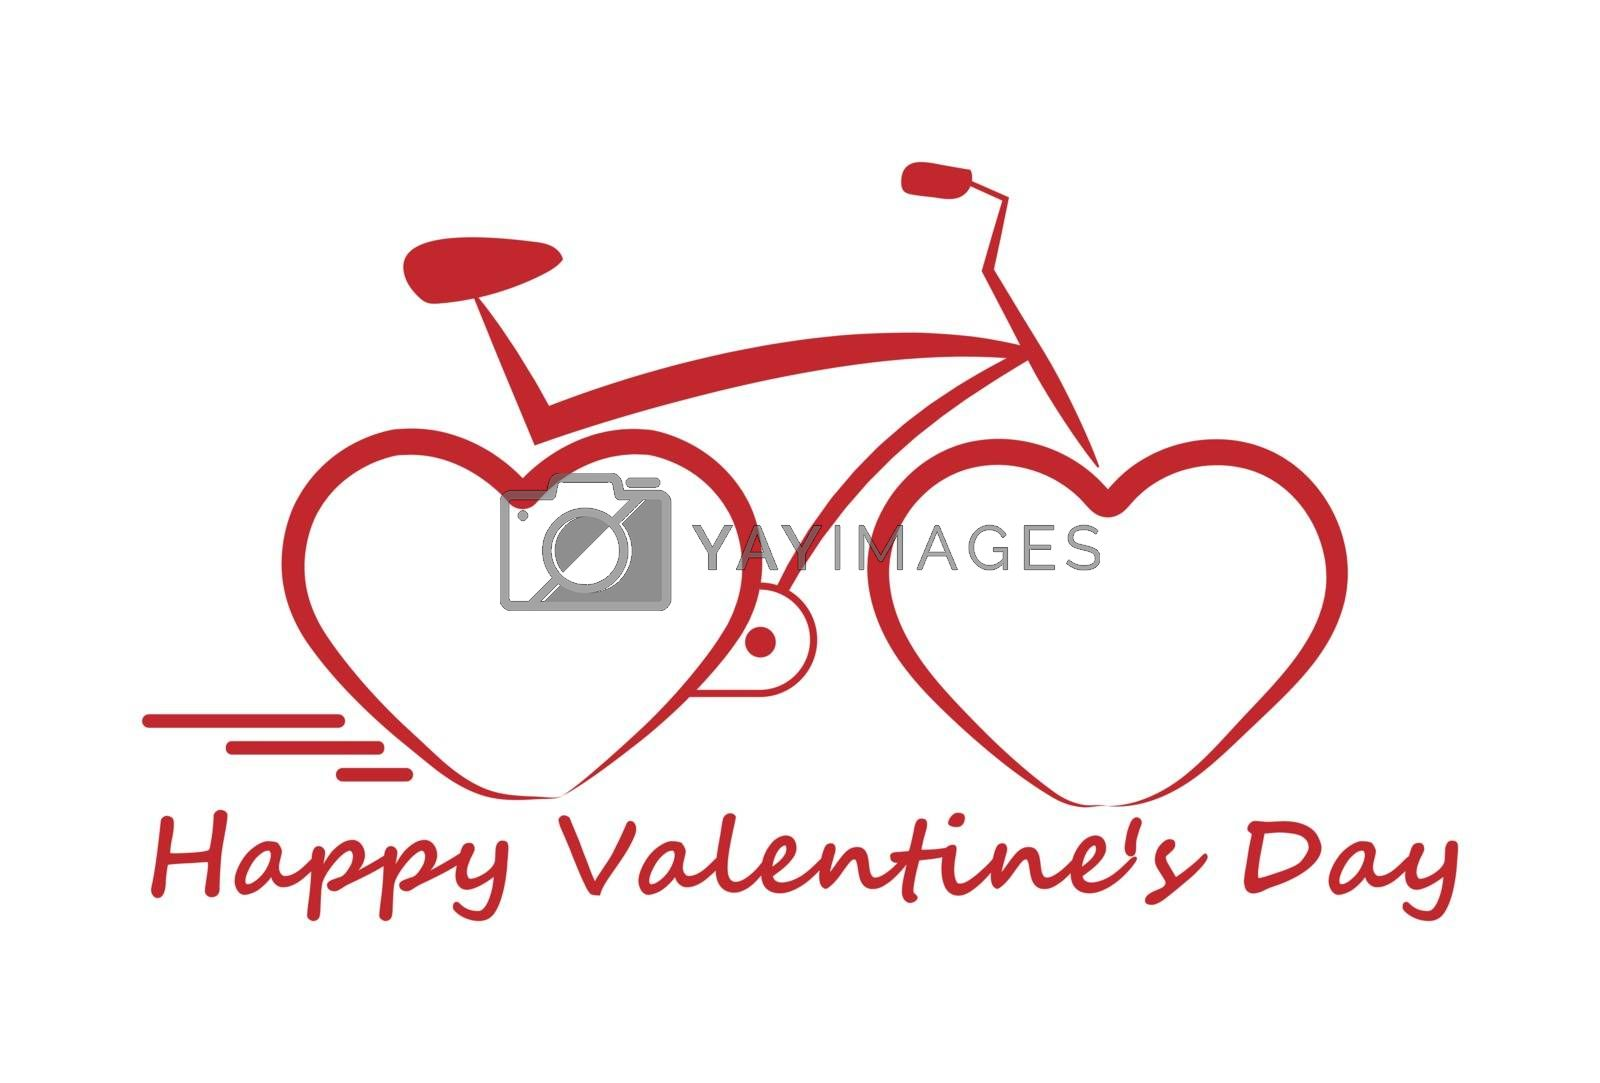 Bicycle with hearts instead of wheels, Valentine's Day.